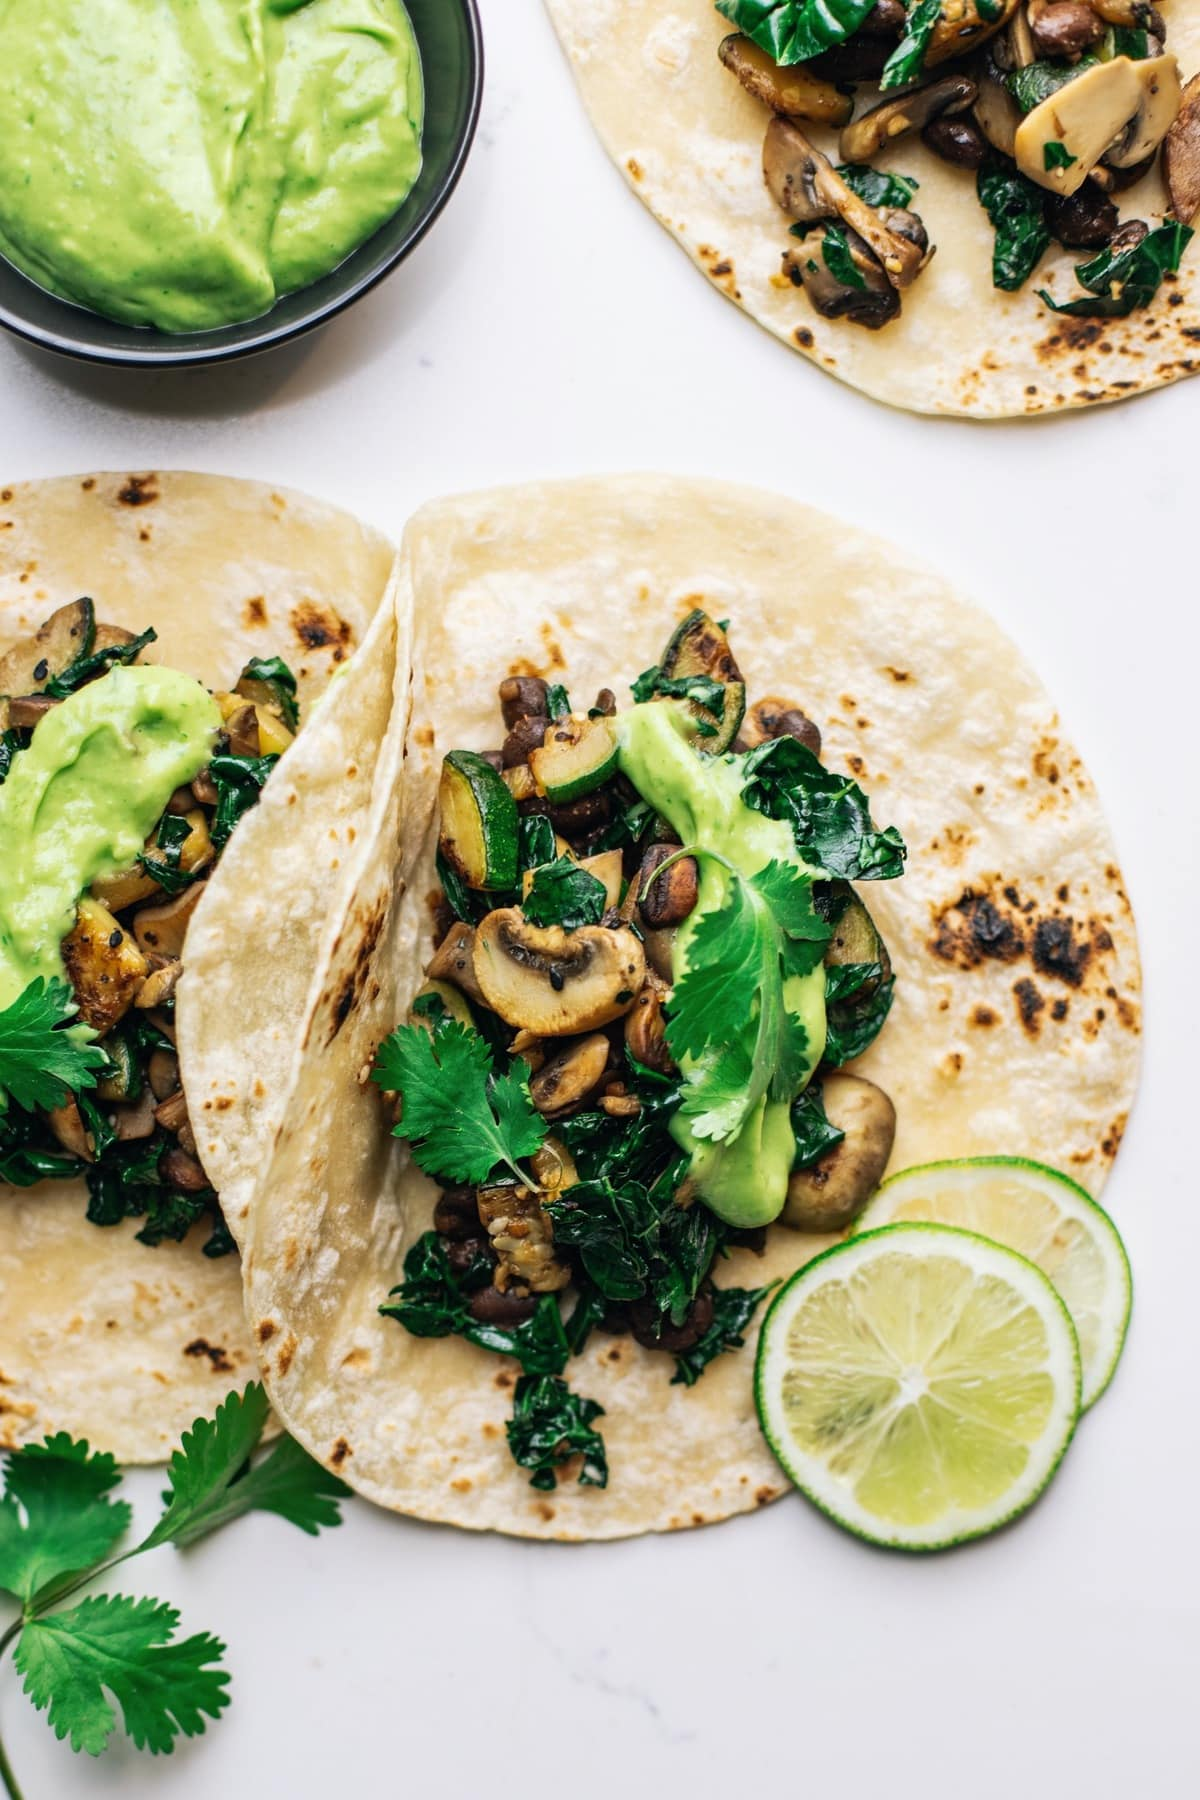 Veggie tacos on a white counter with avocado sauce and lime slices arranged around them.